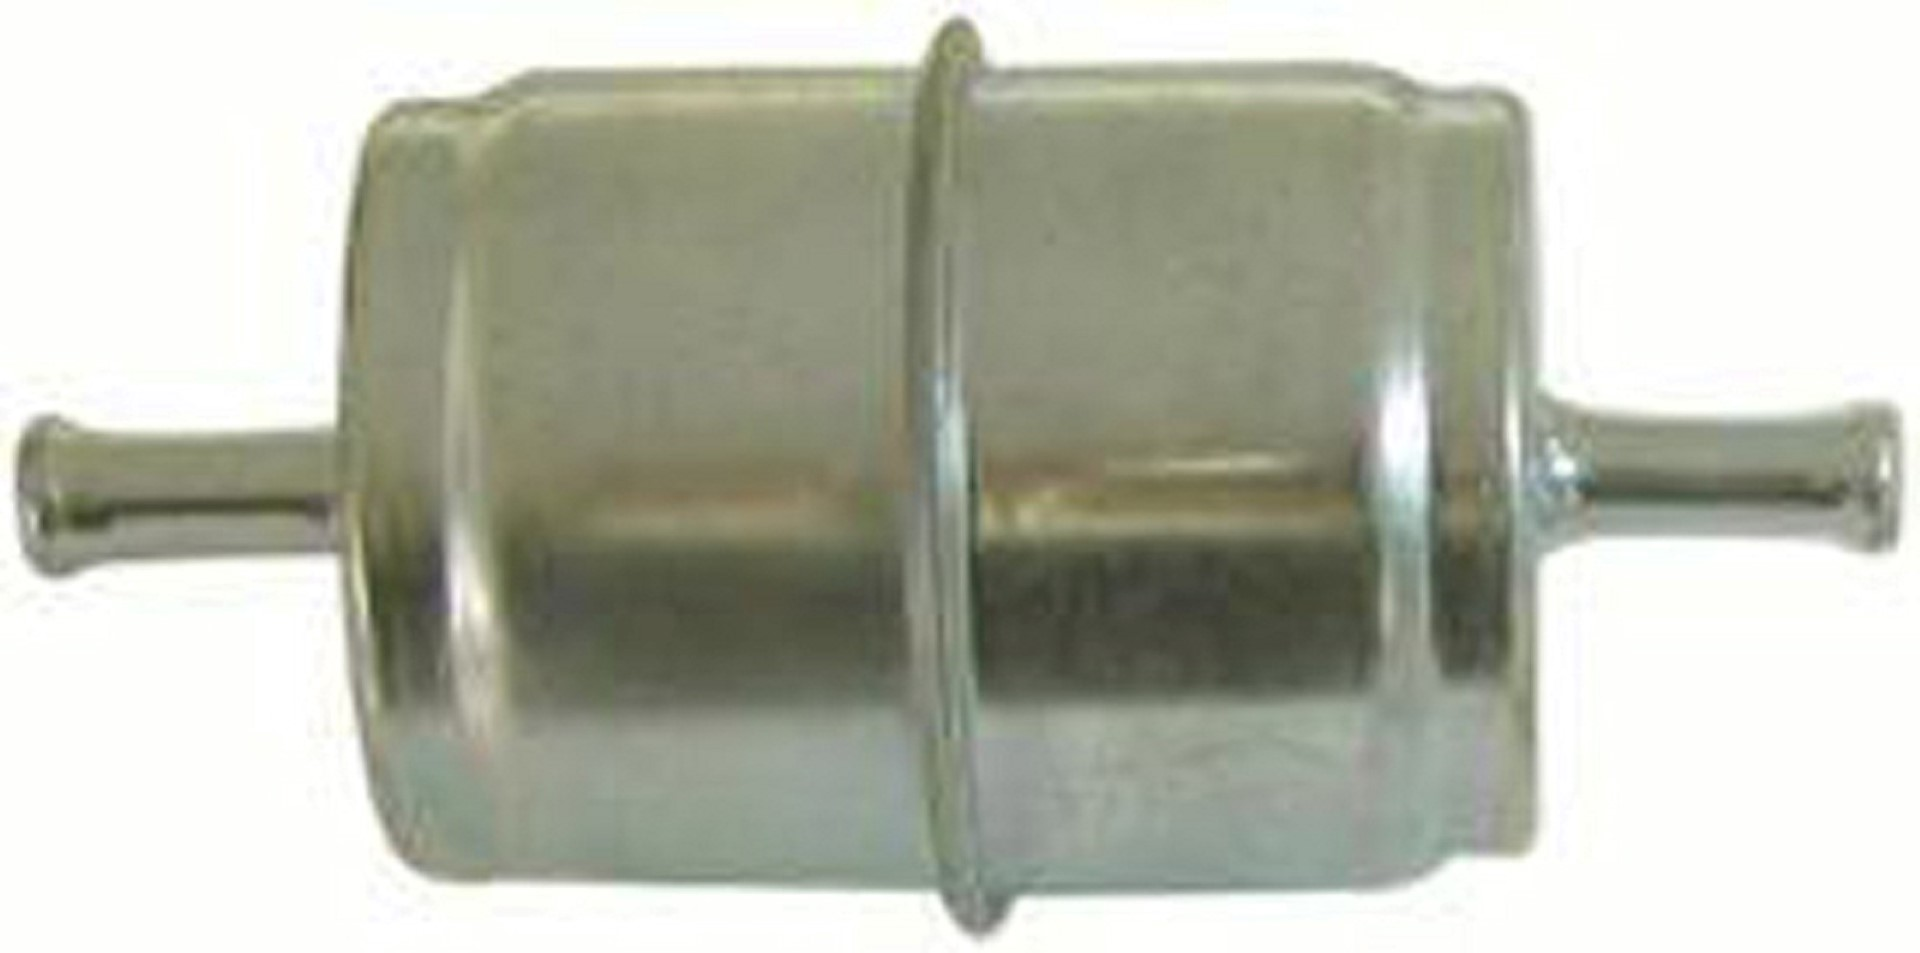 Fuel Filter for Kohler, Ariens, Toro